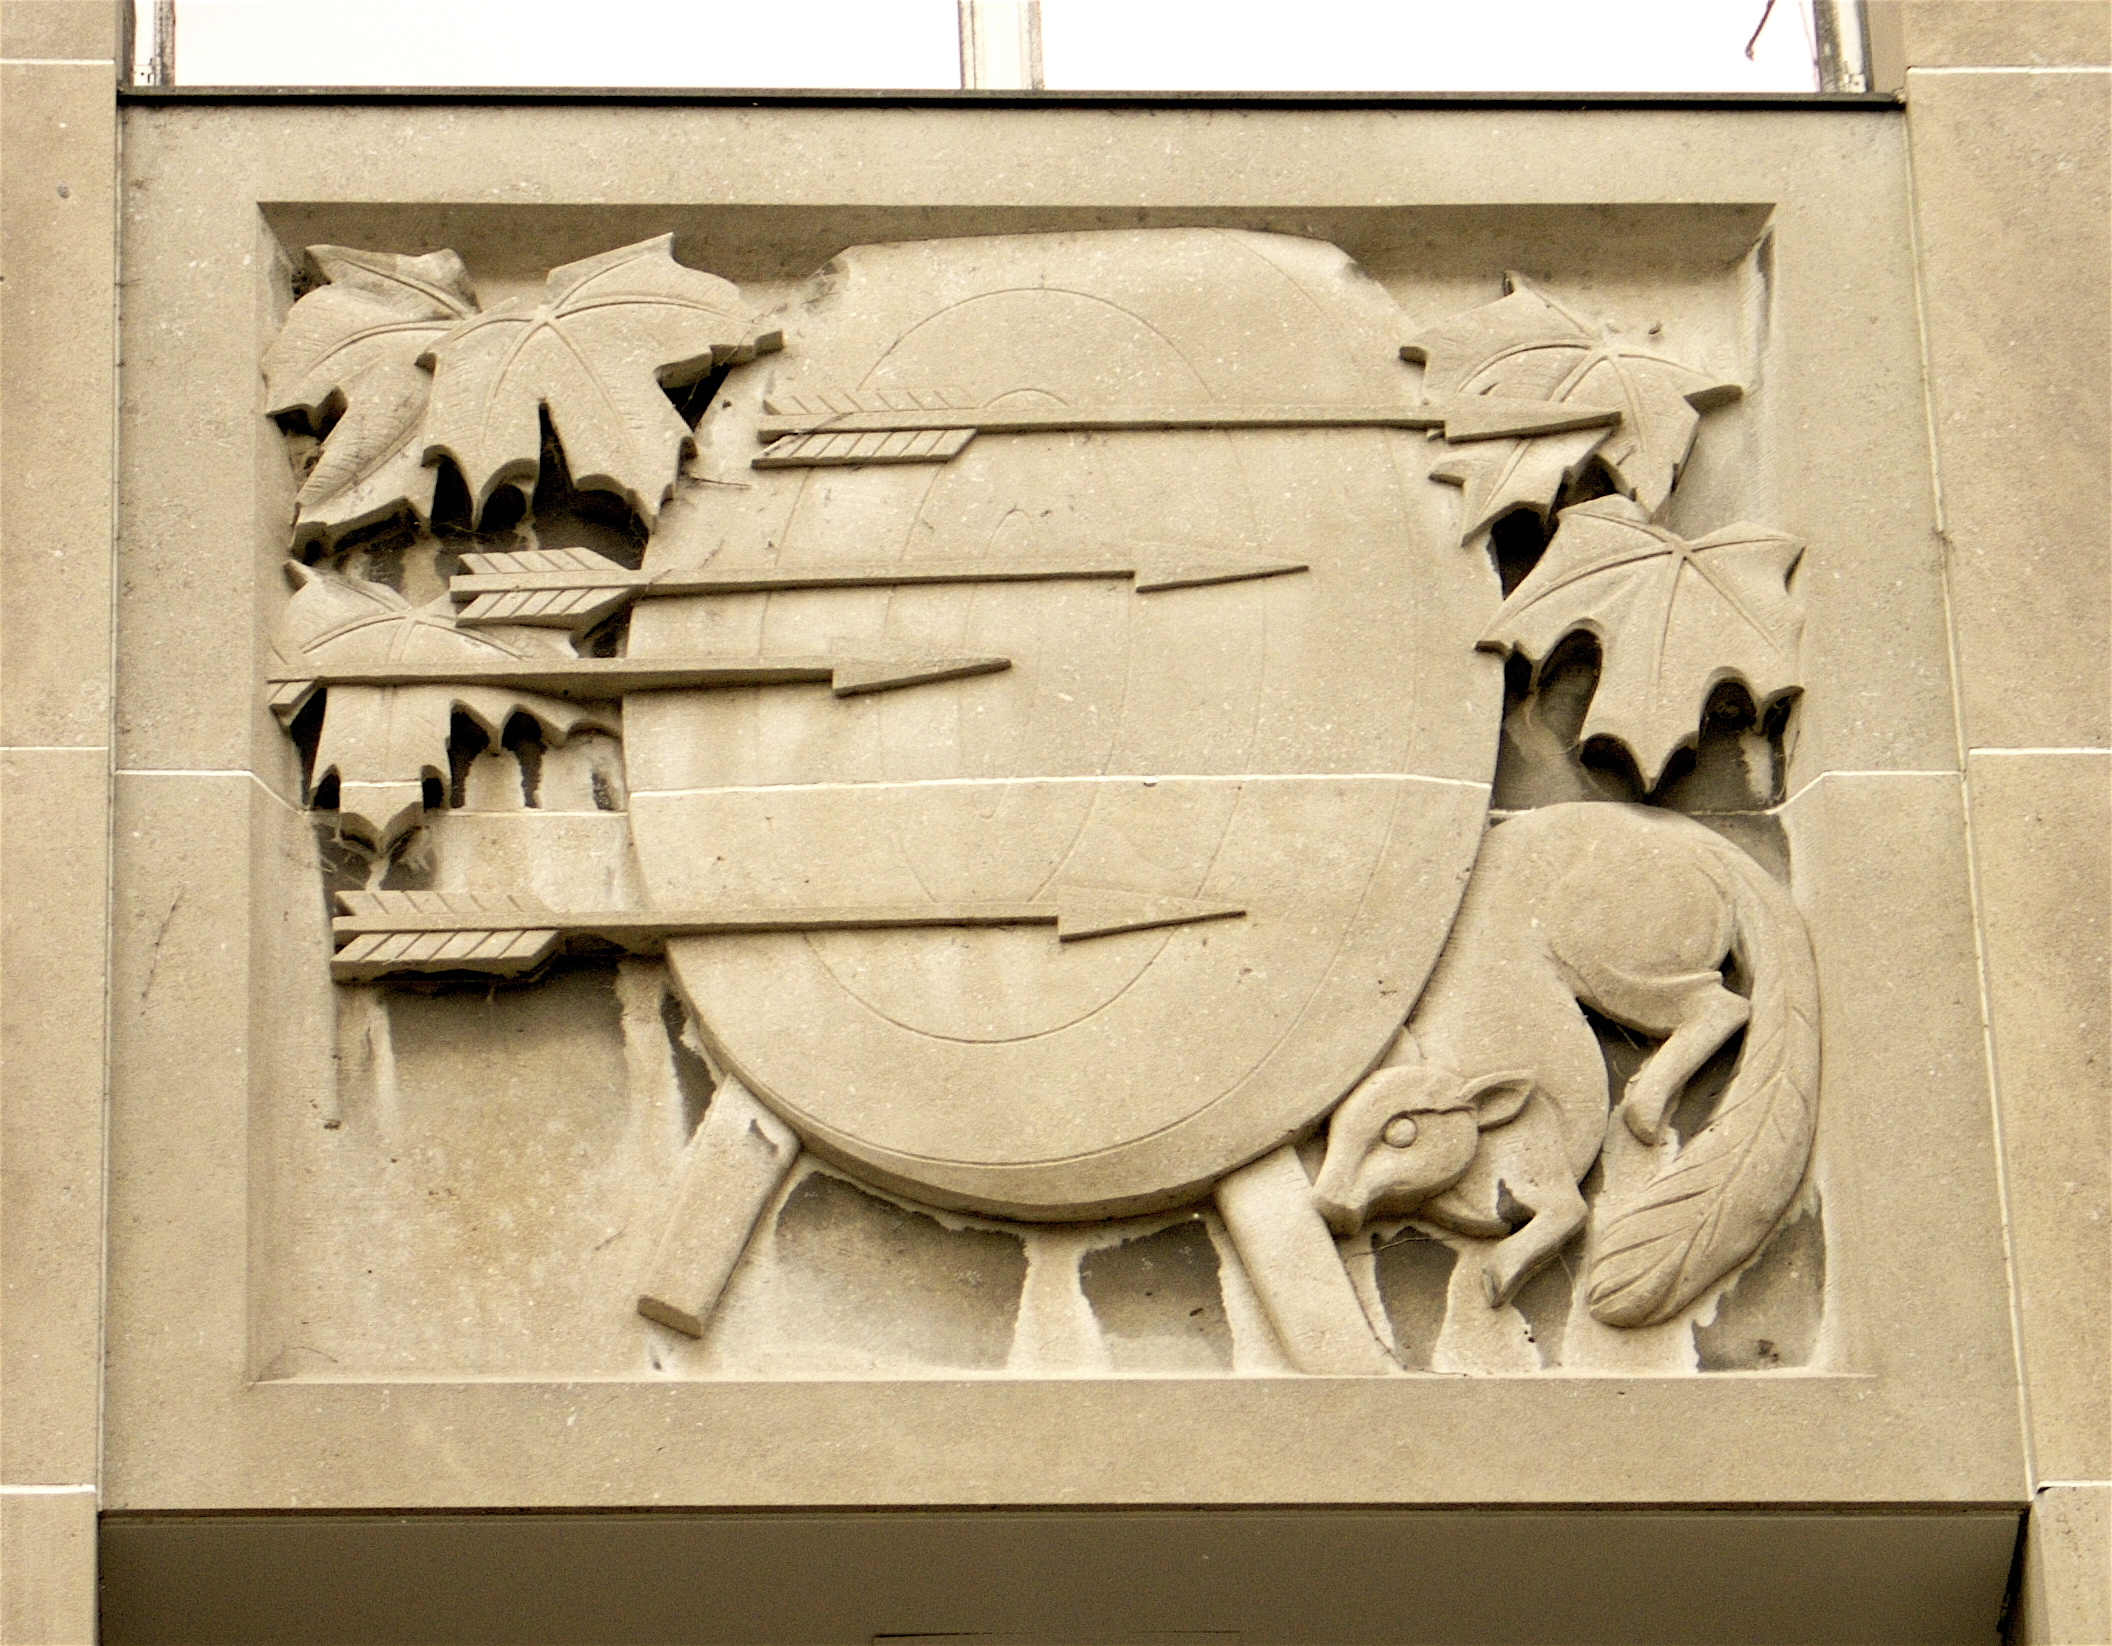 Bas-relief by Elizabeth Wyn Wood, Ryerson University, Toronto. Photo: Sandra Cohen-Rose and Colin Rose.